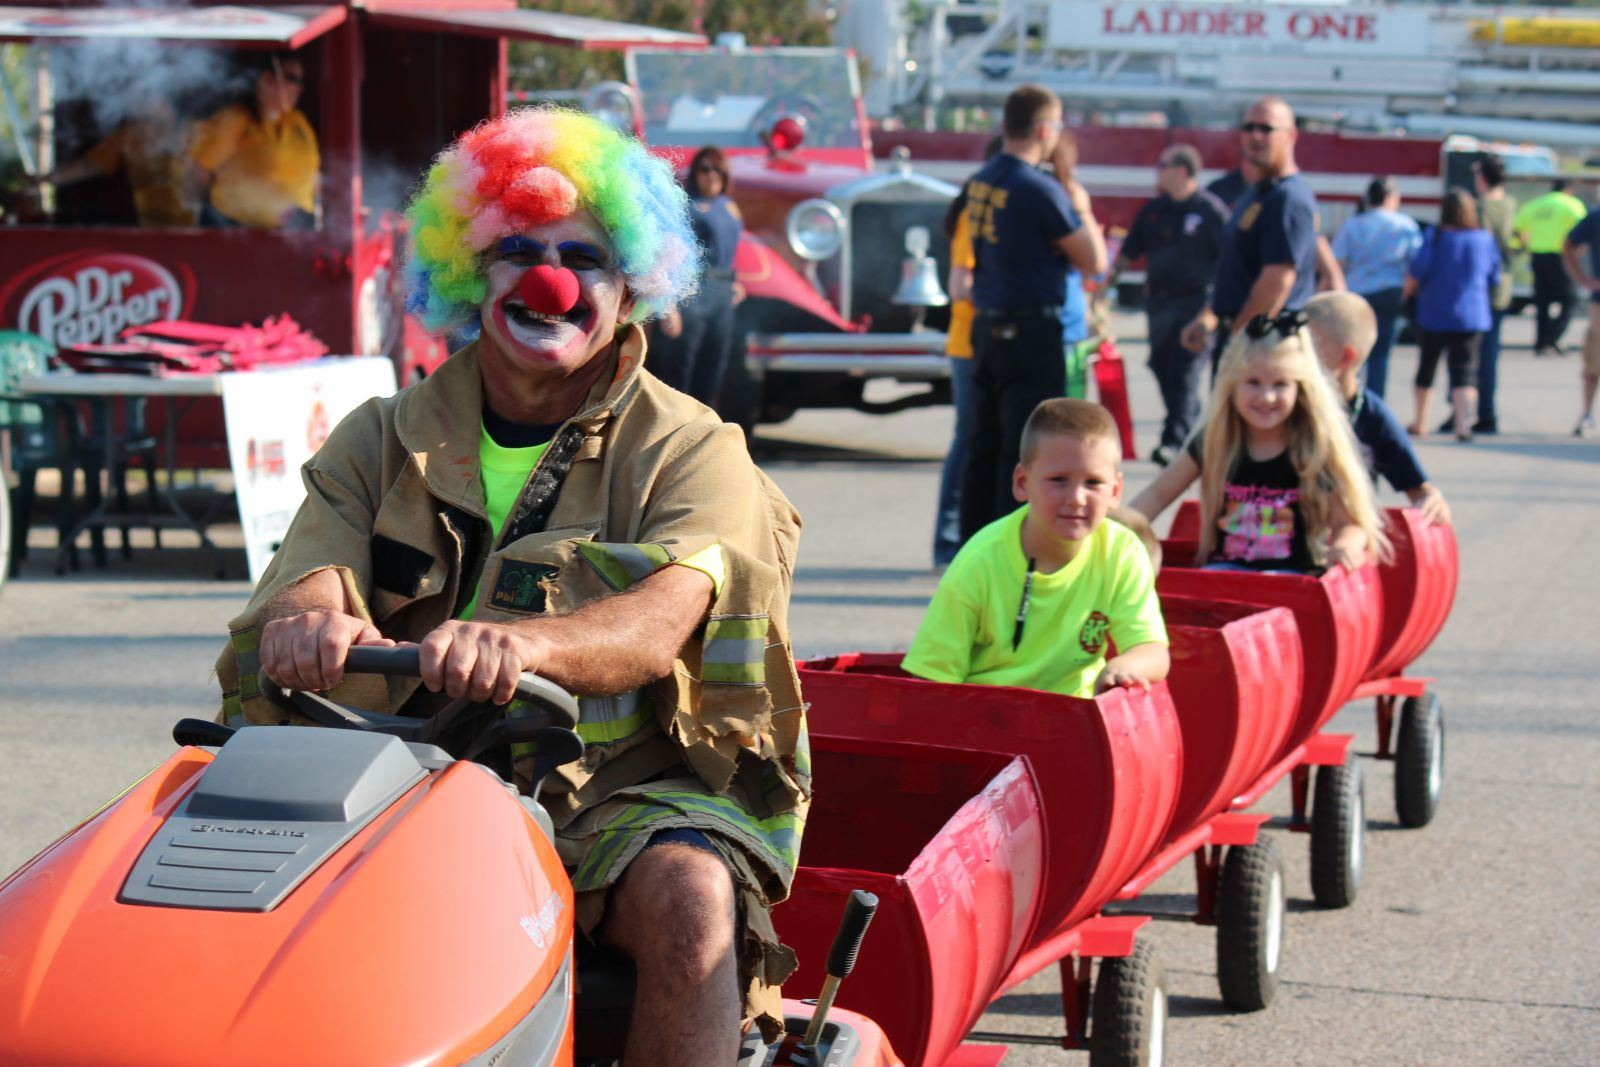 Man Dressed as a Clown Driving a Train Around the Fairgrounds